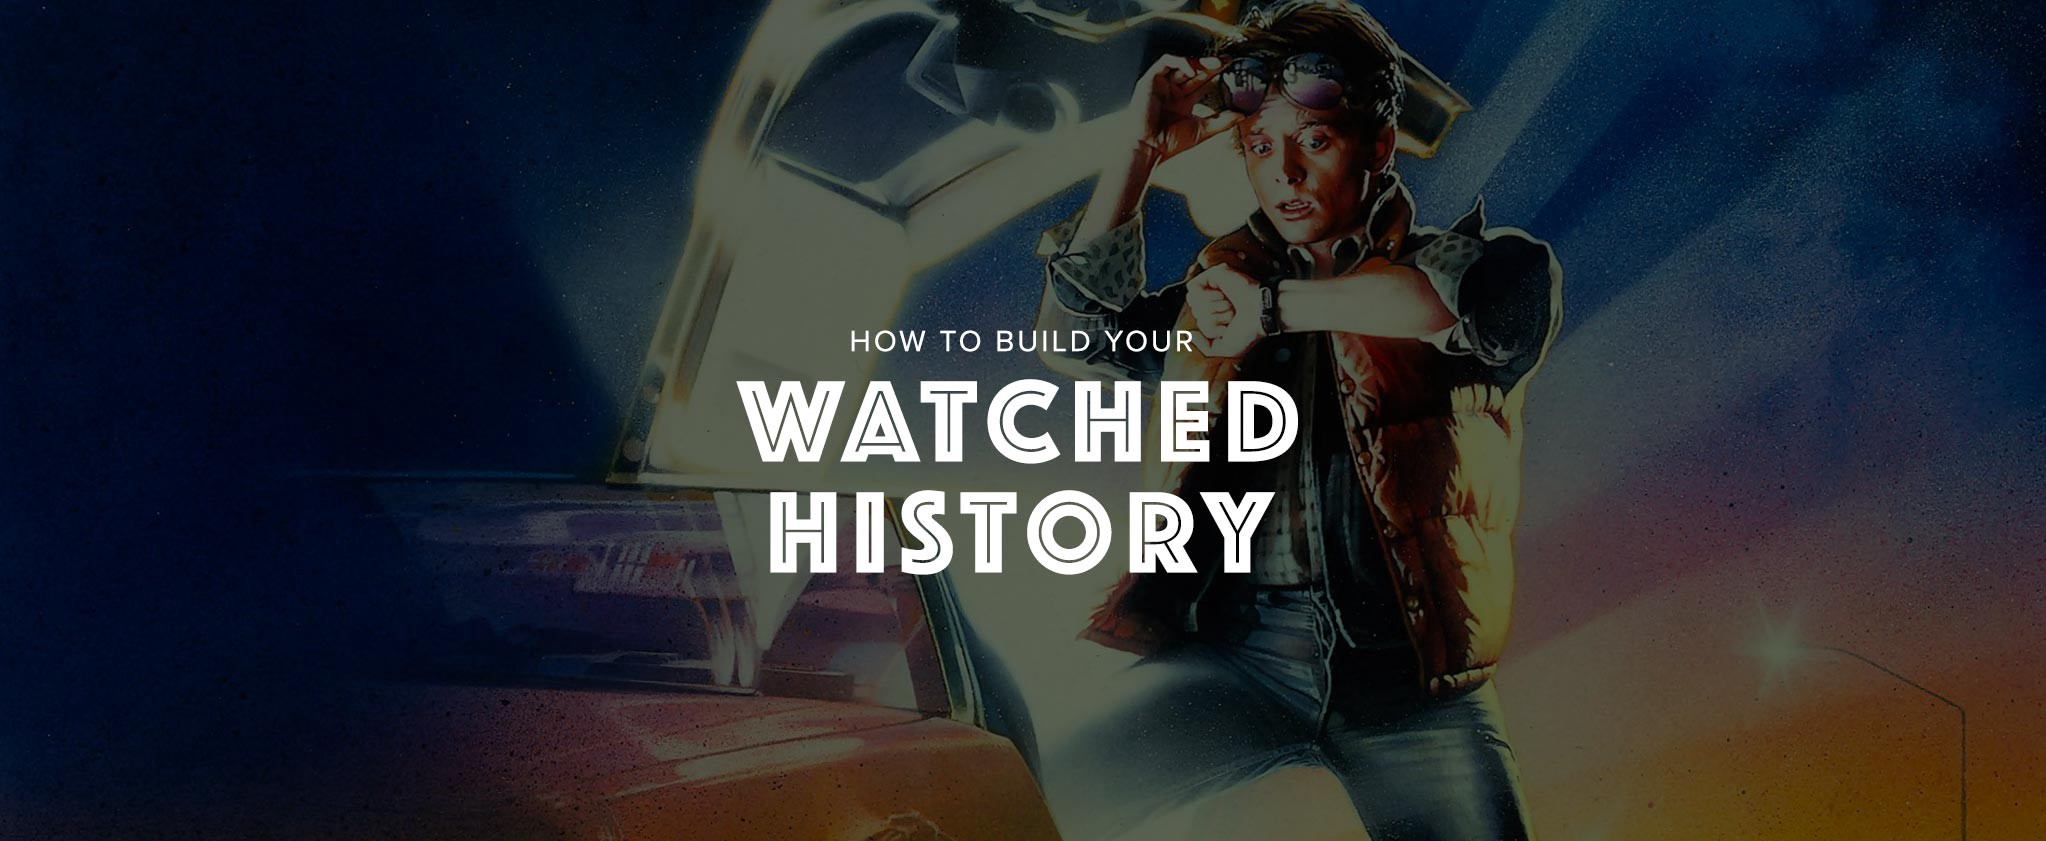 How to build your watched history - Trakt tv Blog